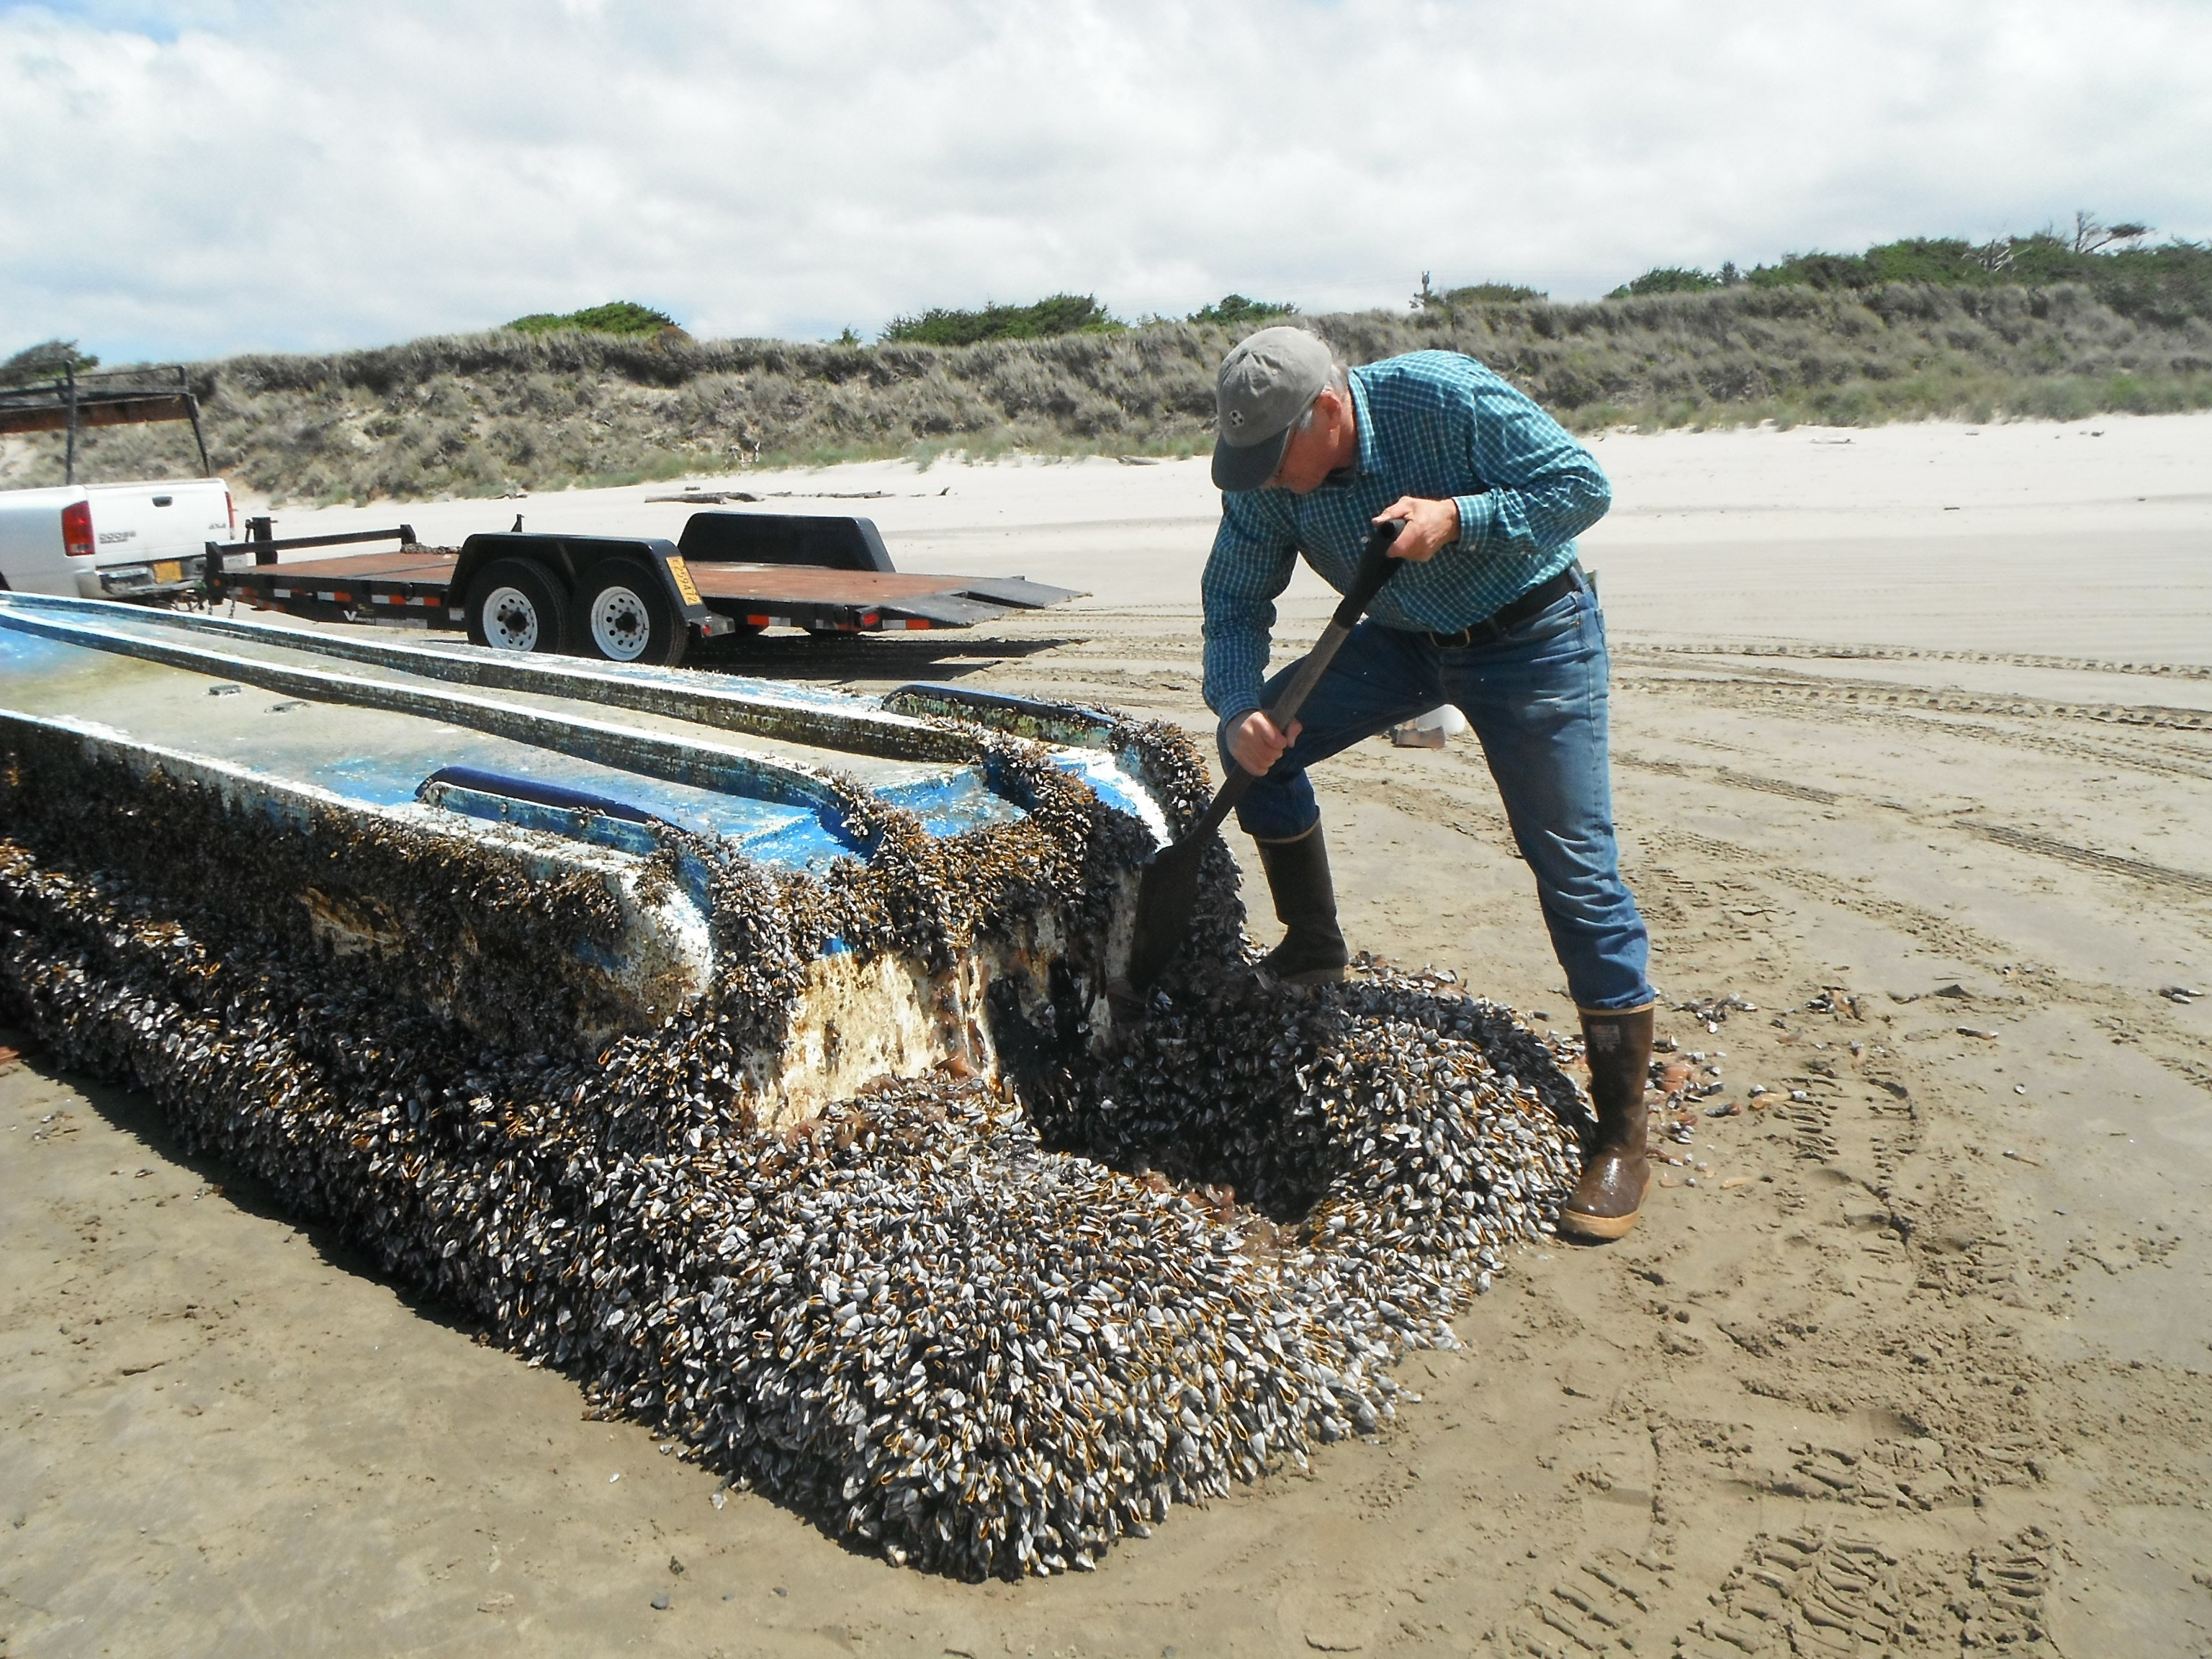 Debris from the 2011 tsunami carried hundreds of species across the Pacific Ocean